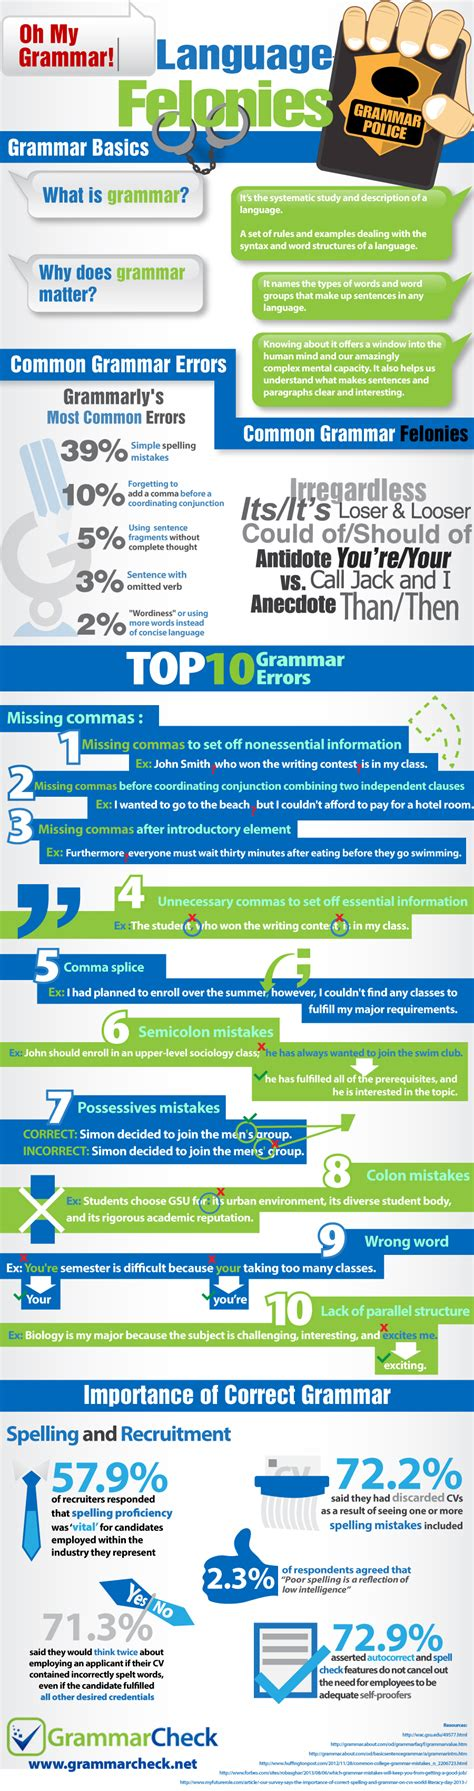 Oh My Grammar! Language Felonies Top 10 Grammar Errors, Common Mistakes, And The Importance Of